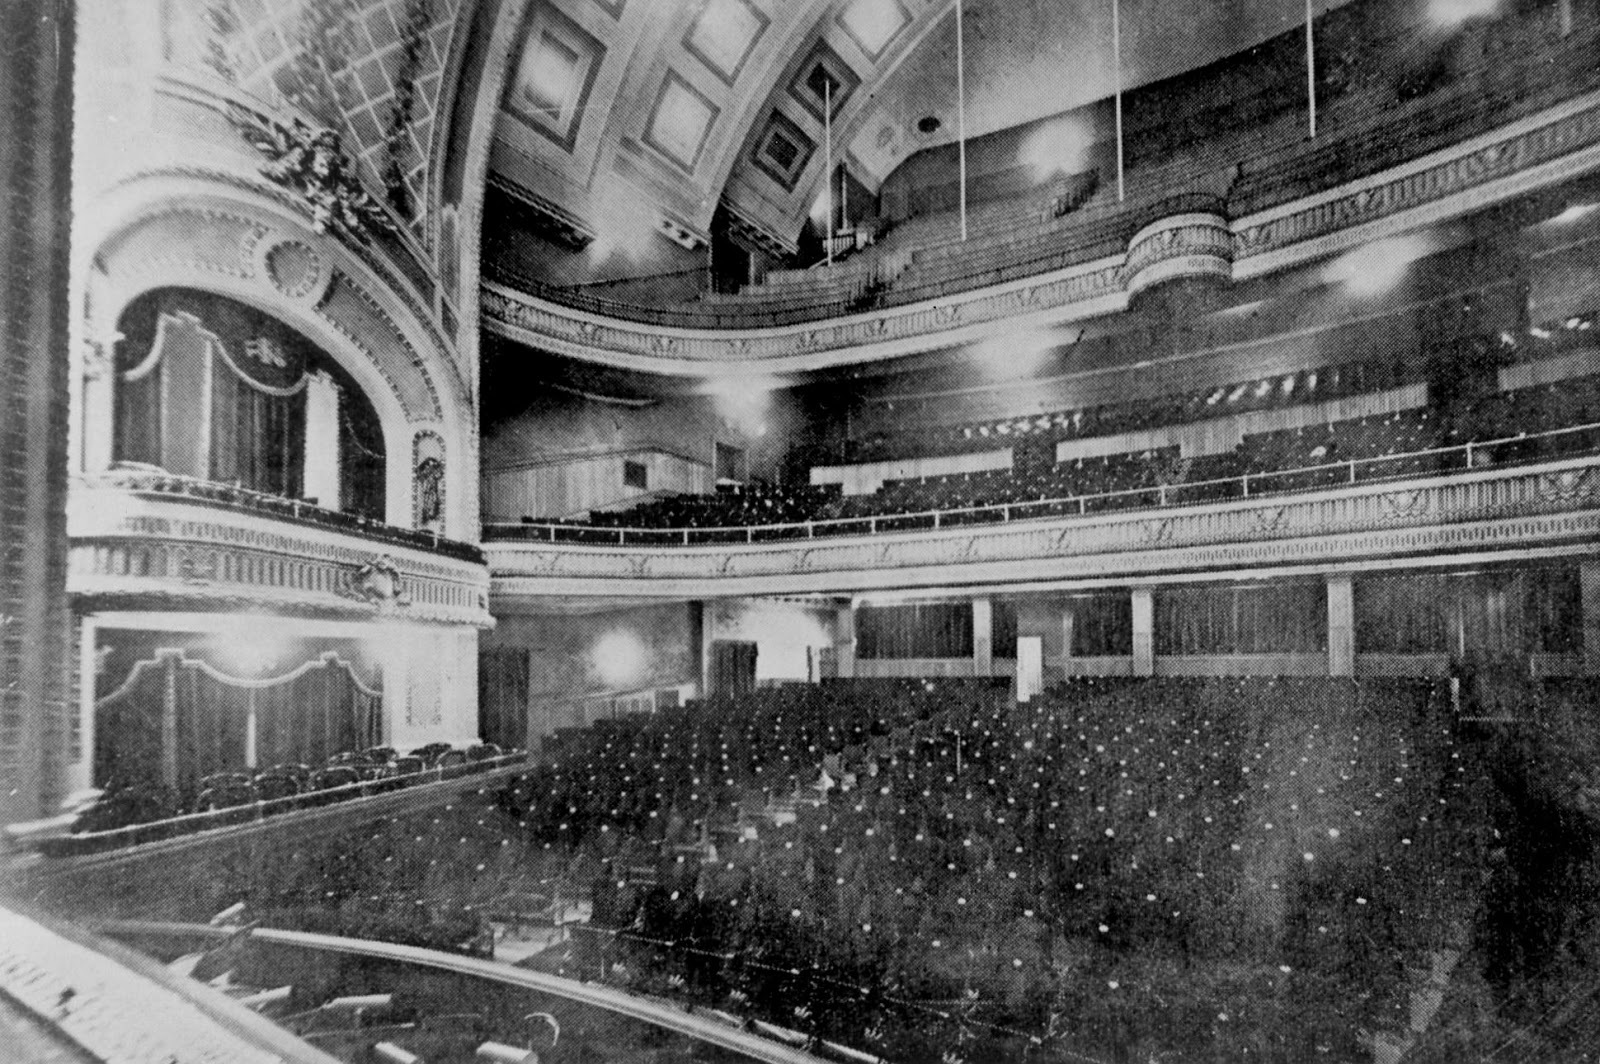 Some 1,700 people filled Winnipeg's Walker Theatre (now Burton Cummings Theatre) for the 1918 meeting, which helped stoke the labour activism in 1919 that led to the general strike. (Archives of Manitoba)